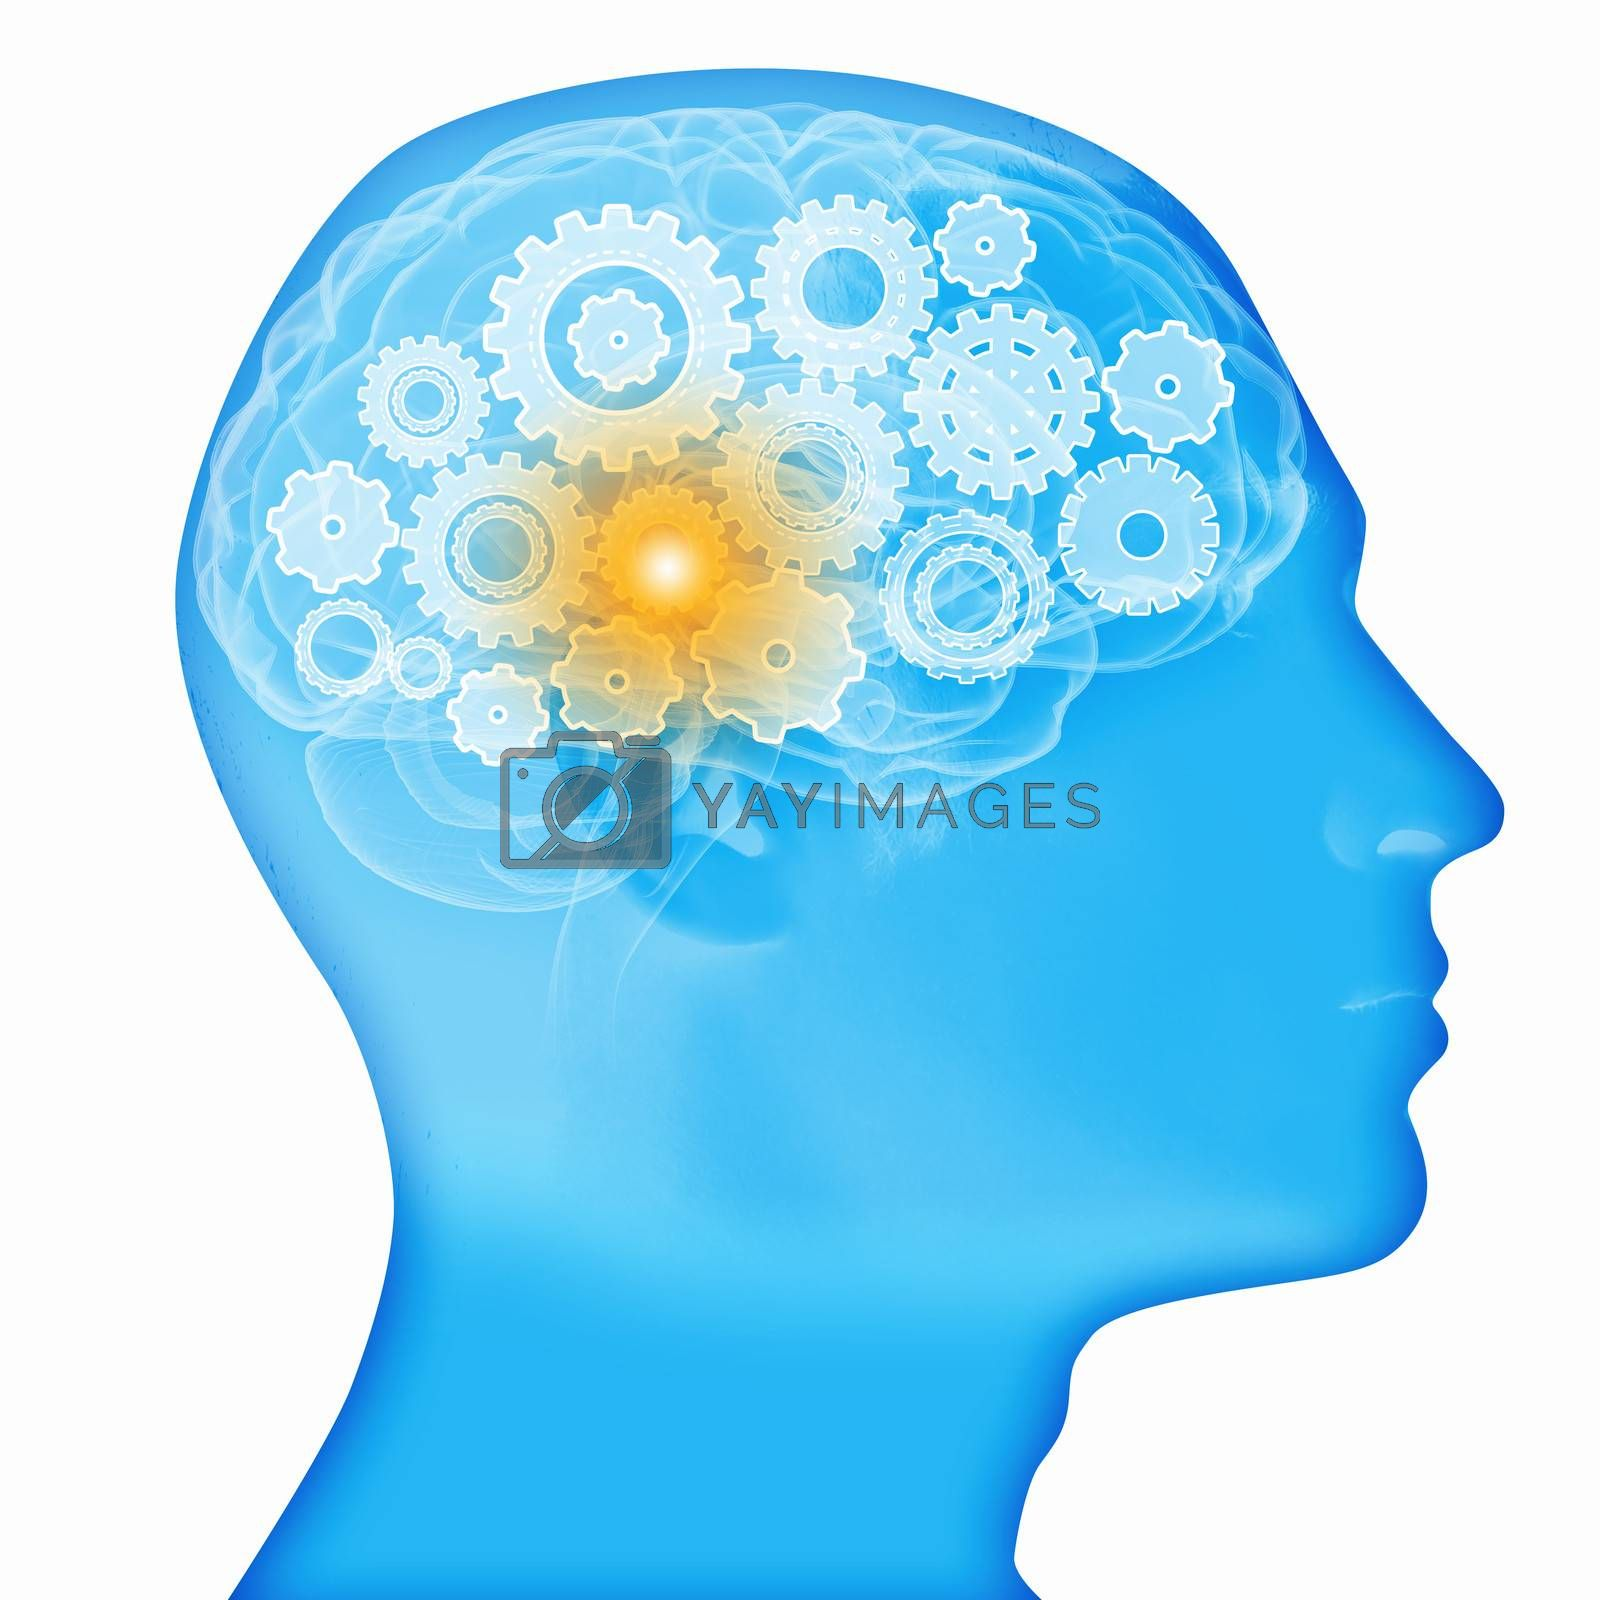 Human head silhouette with gears and cog wheel elements against white background